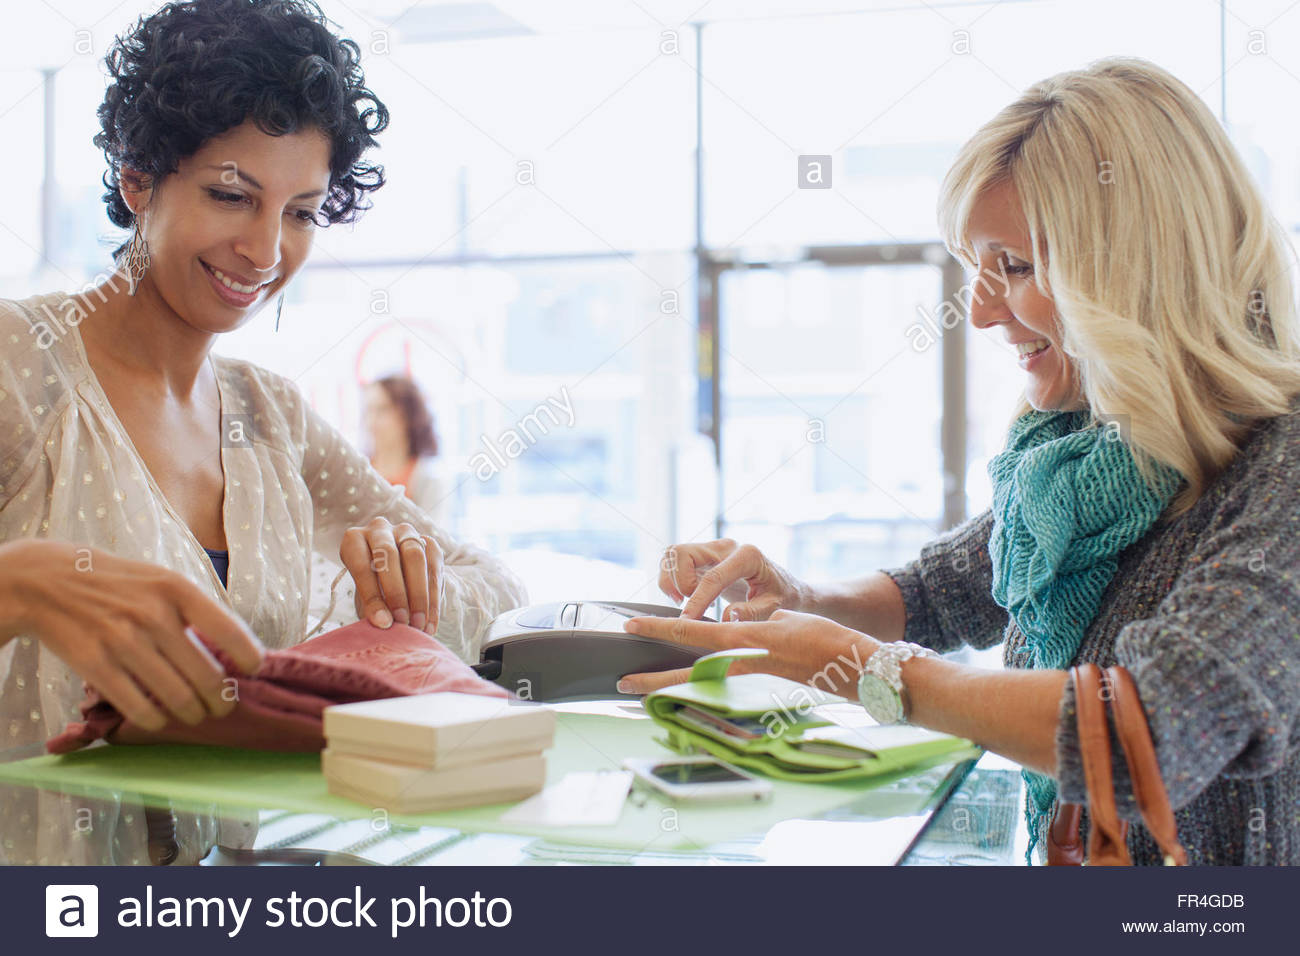 Woman using debit card to pay for purchase. - Stock Image